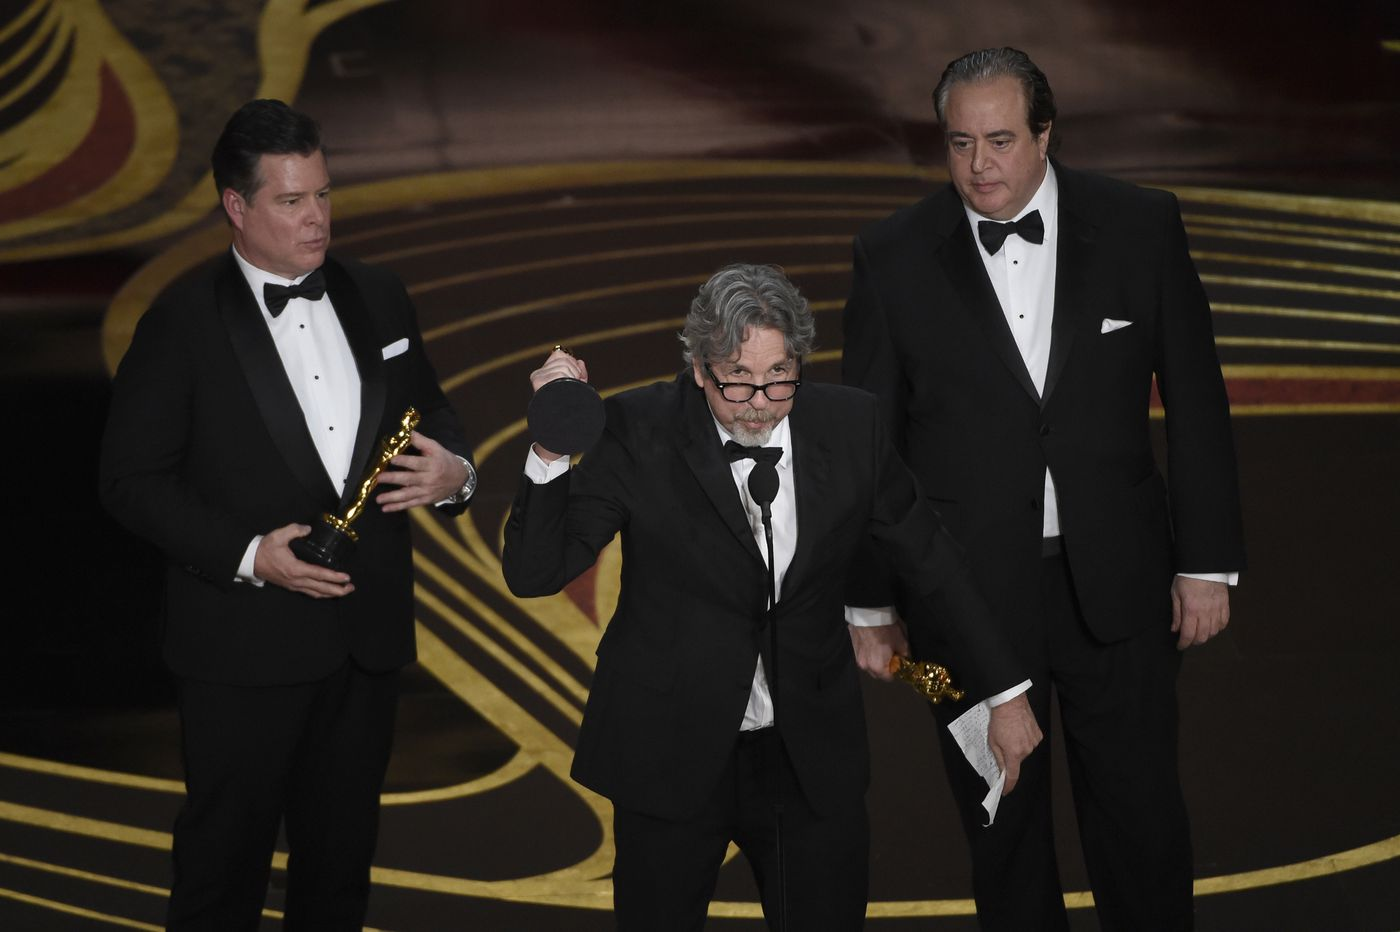 Oscars 2019: 'Green Book' wins best picture at the 91st